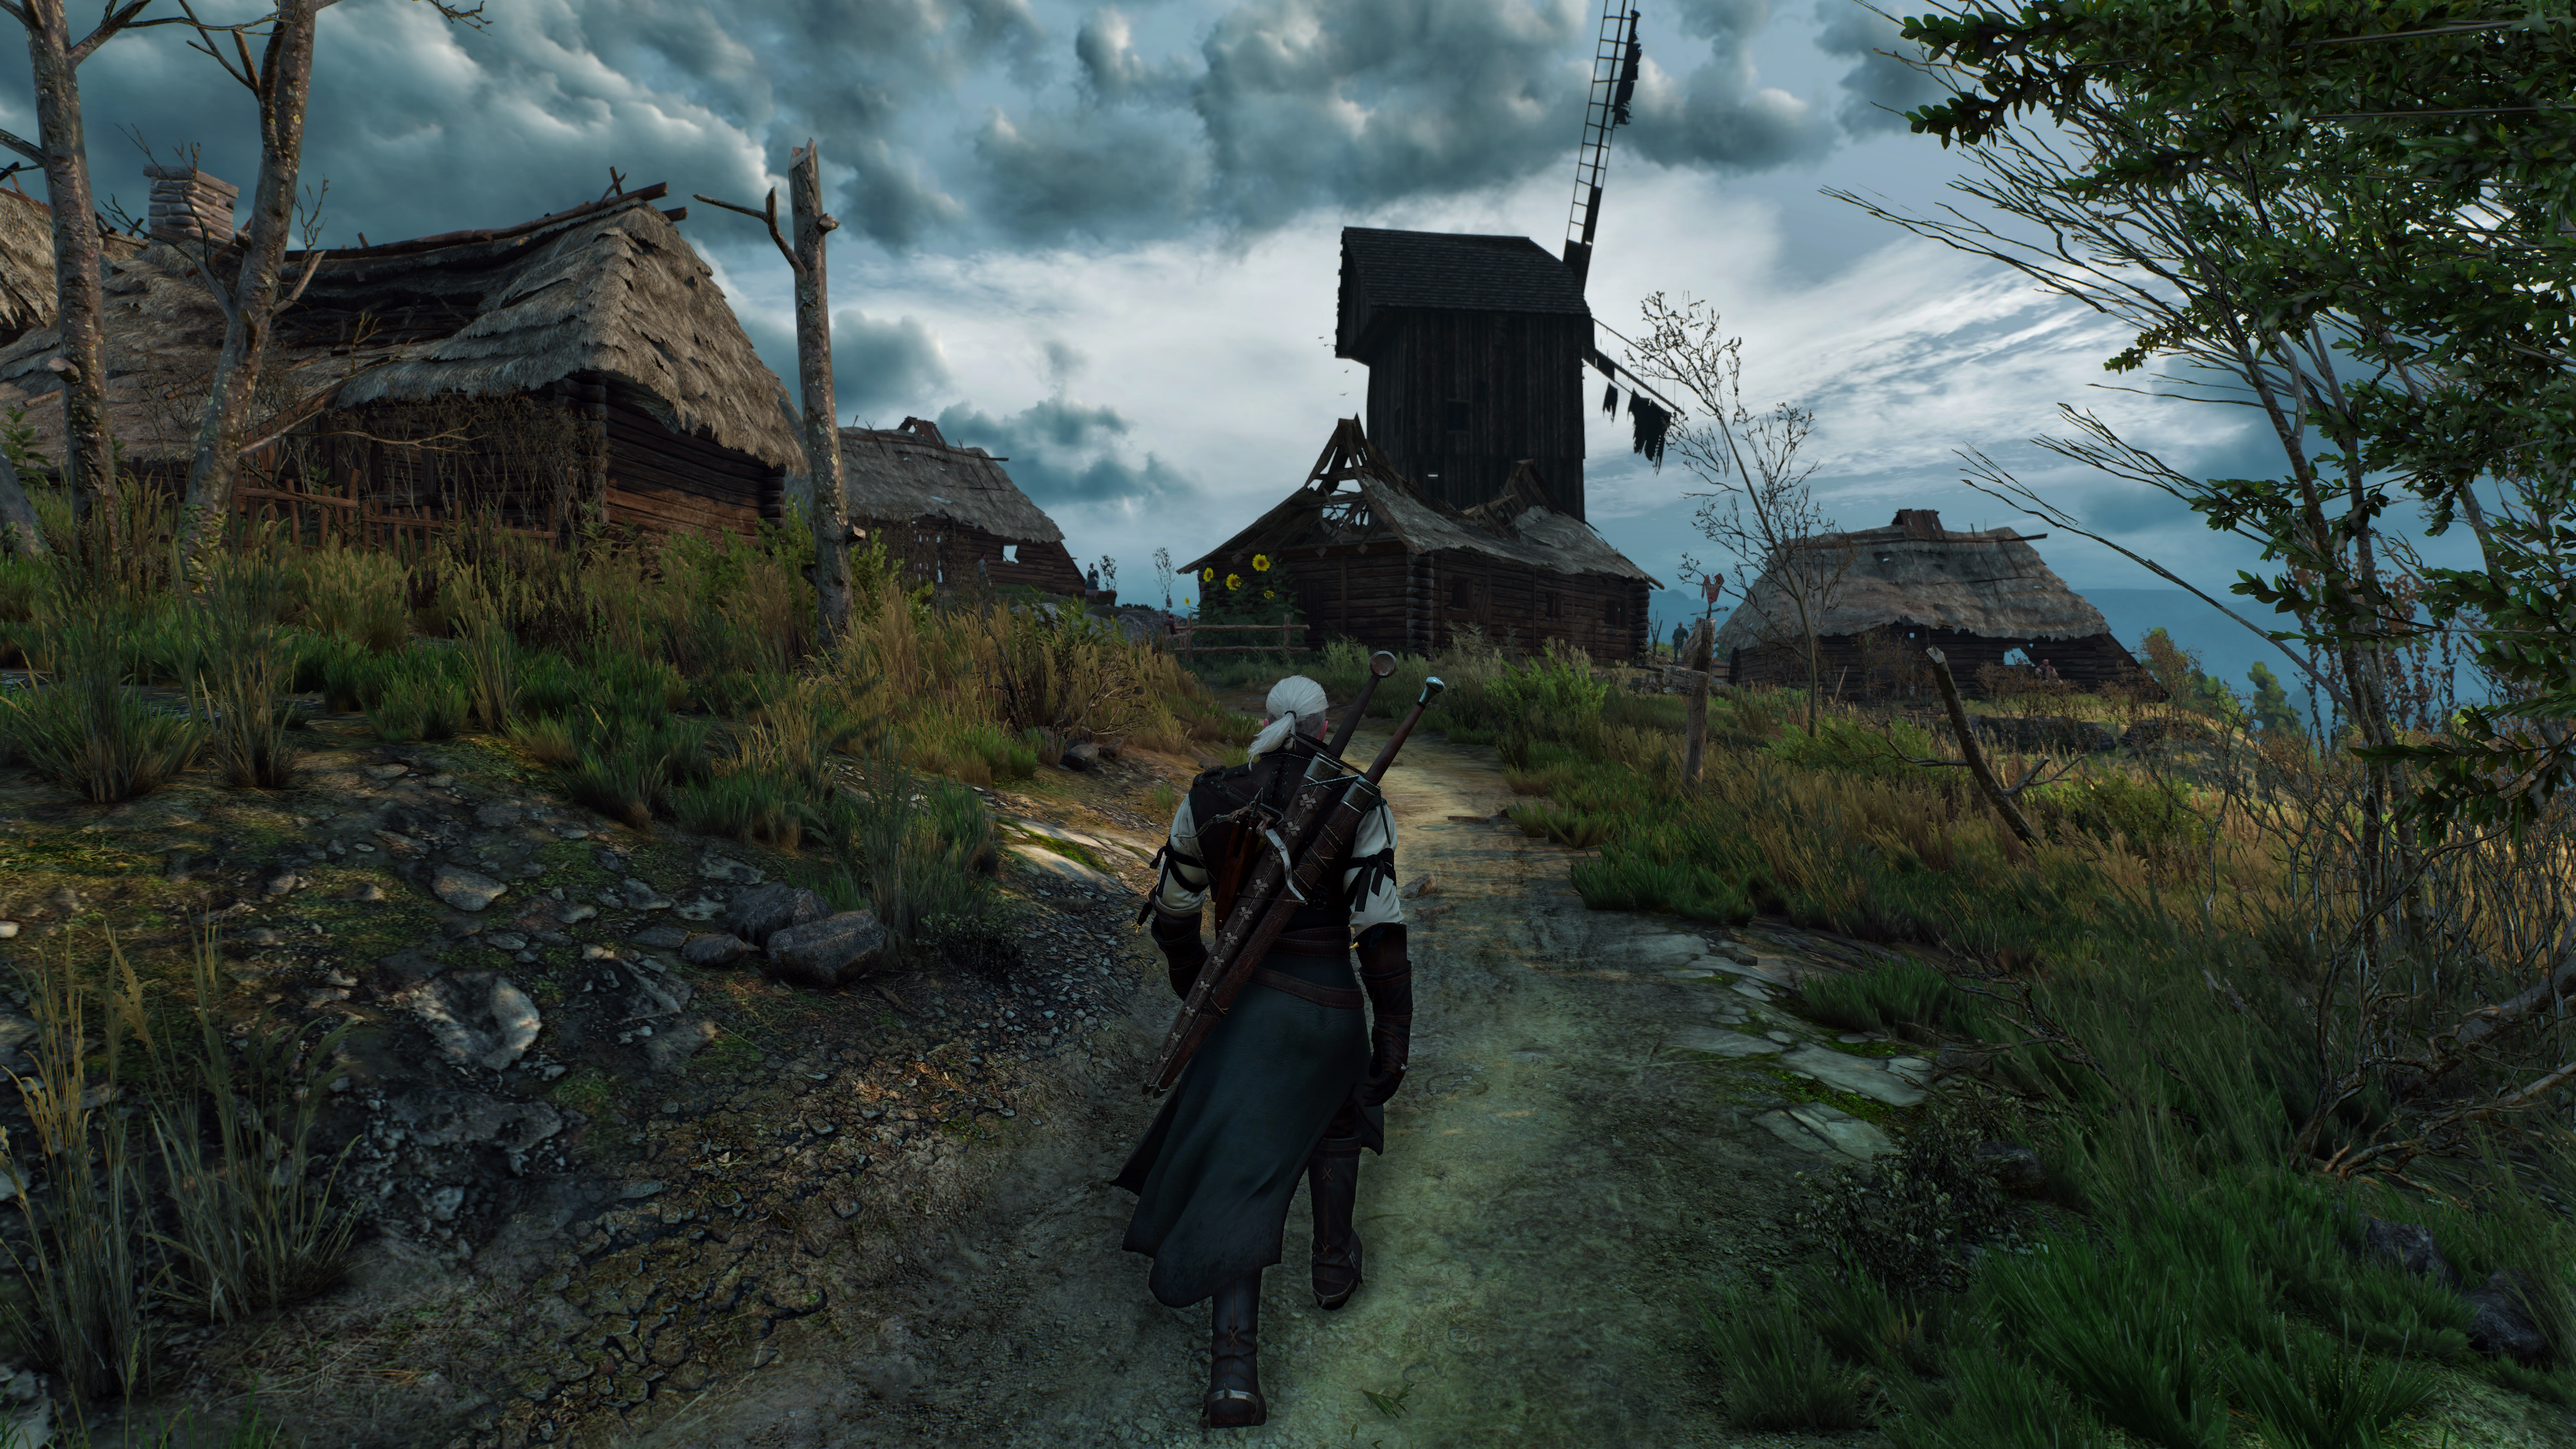 The Witcher 3: Wild Hunt screenshot released in 4K is stunning